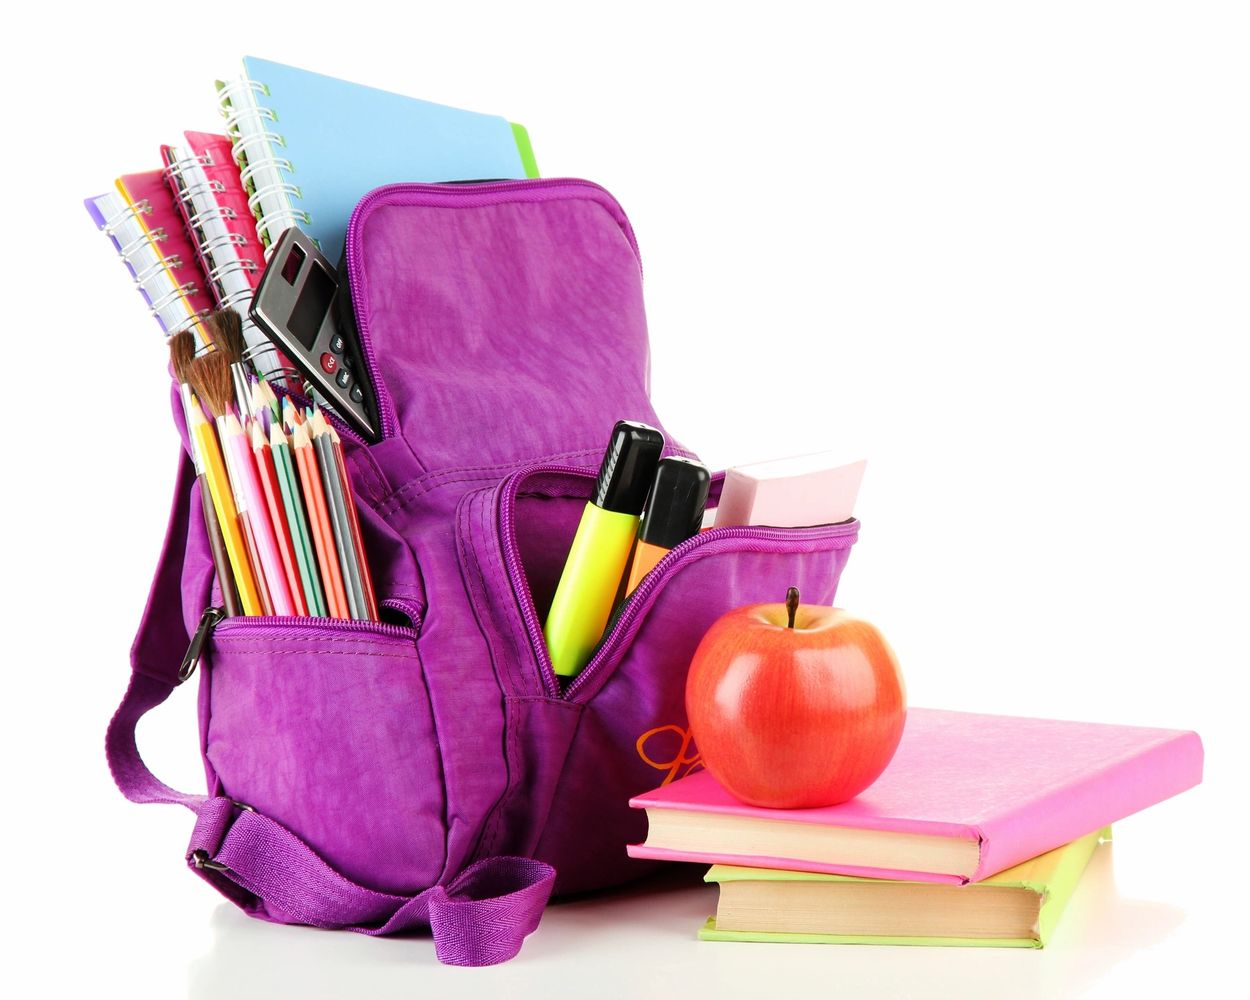 A purple backpack with books, pencils, markers and a calculator